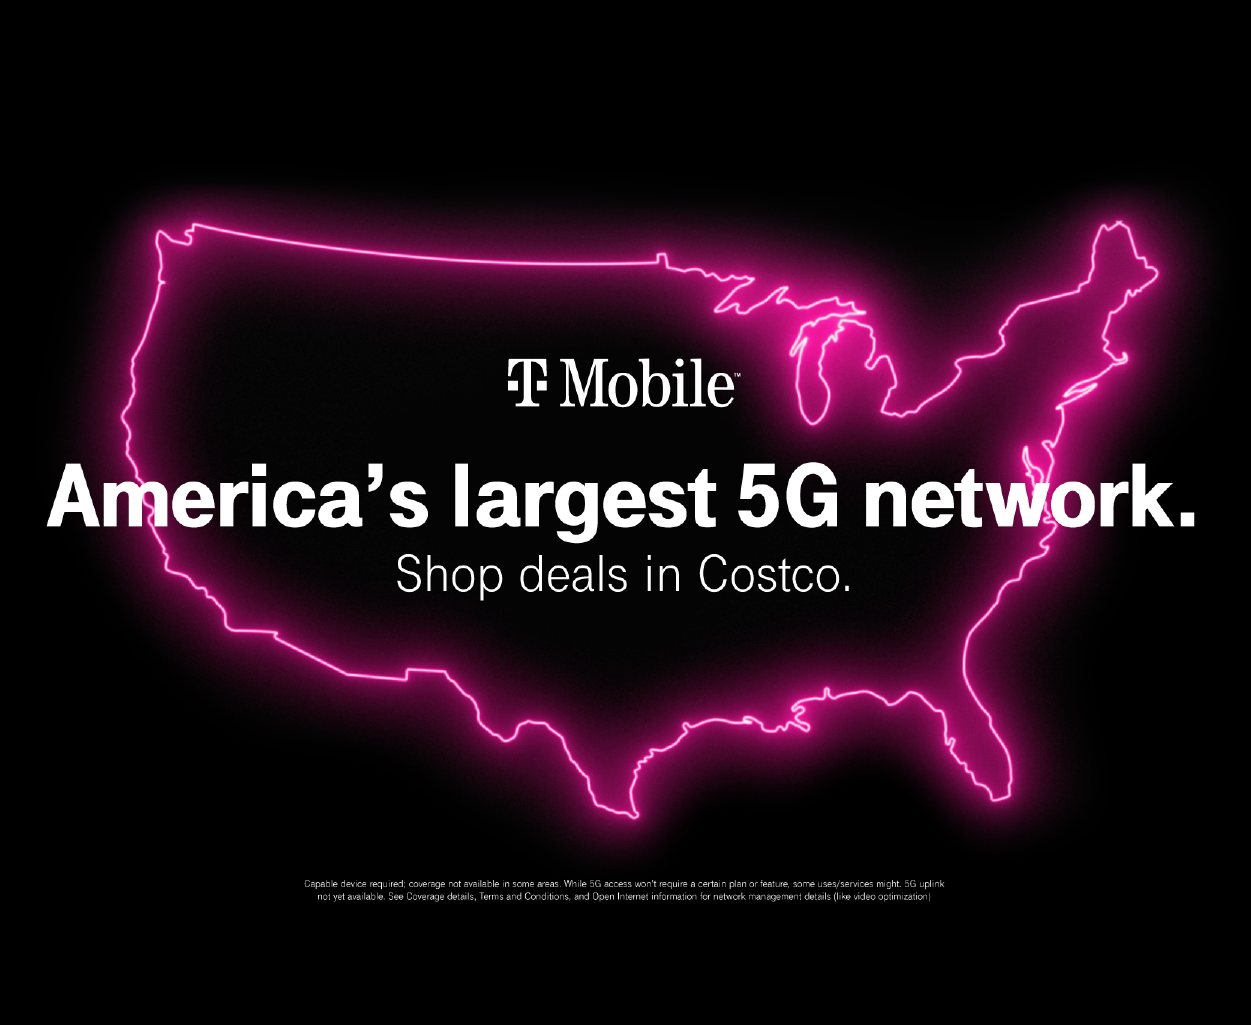 T-Mobile America's Largest 5G Network